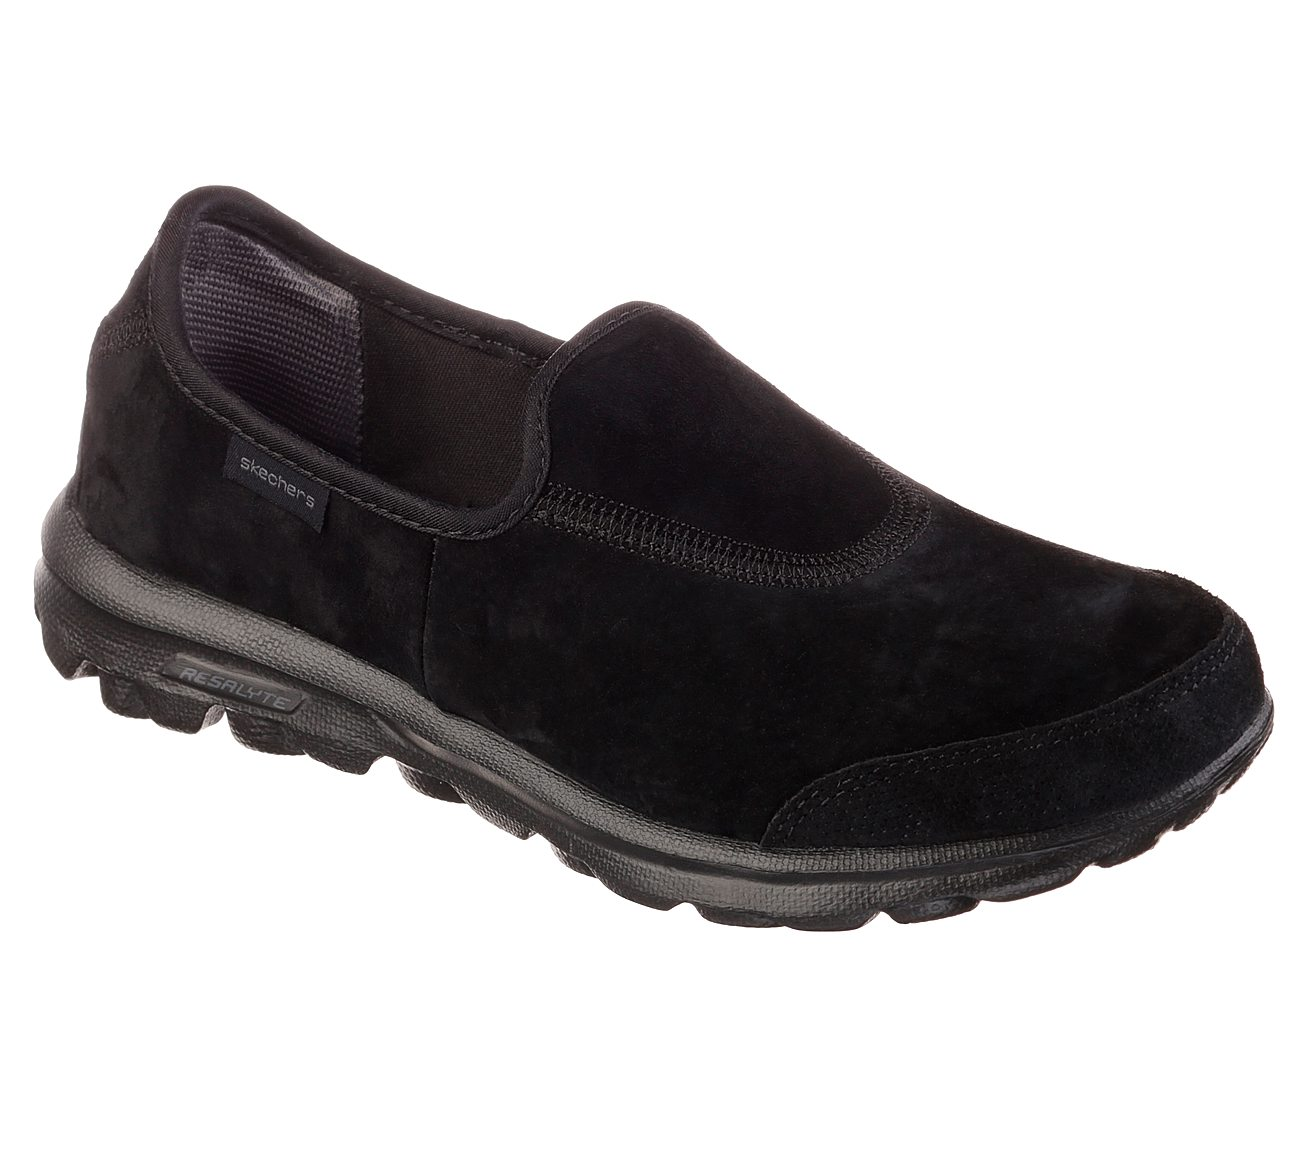 Buy SKECHERS Skechers GOwalk - Winter